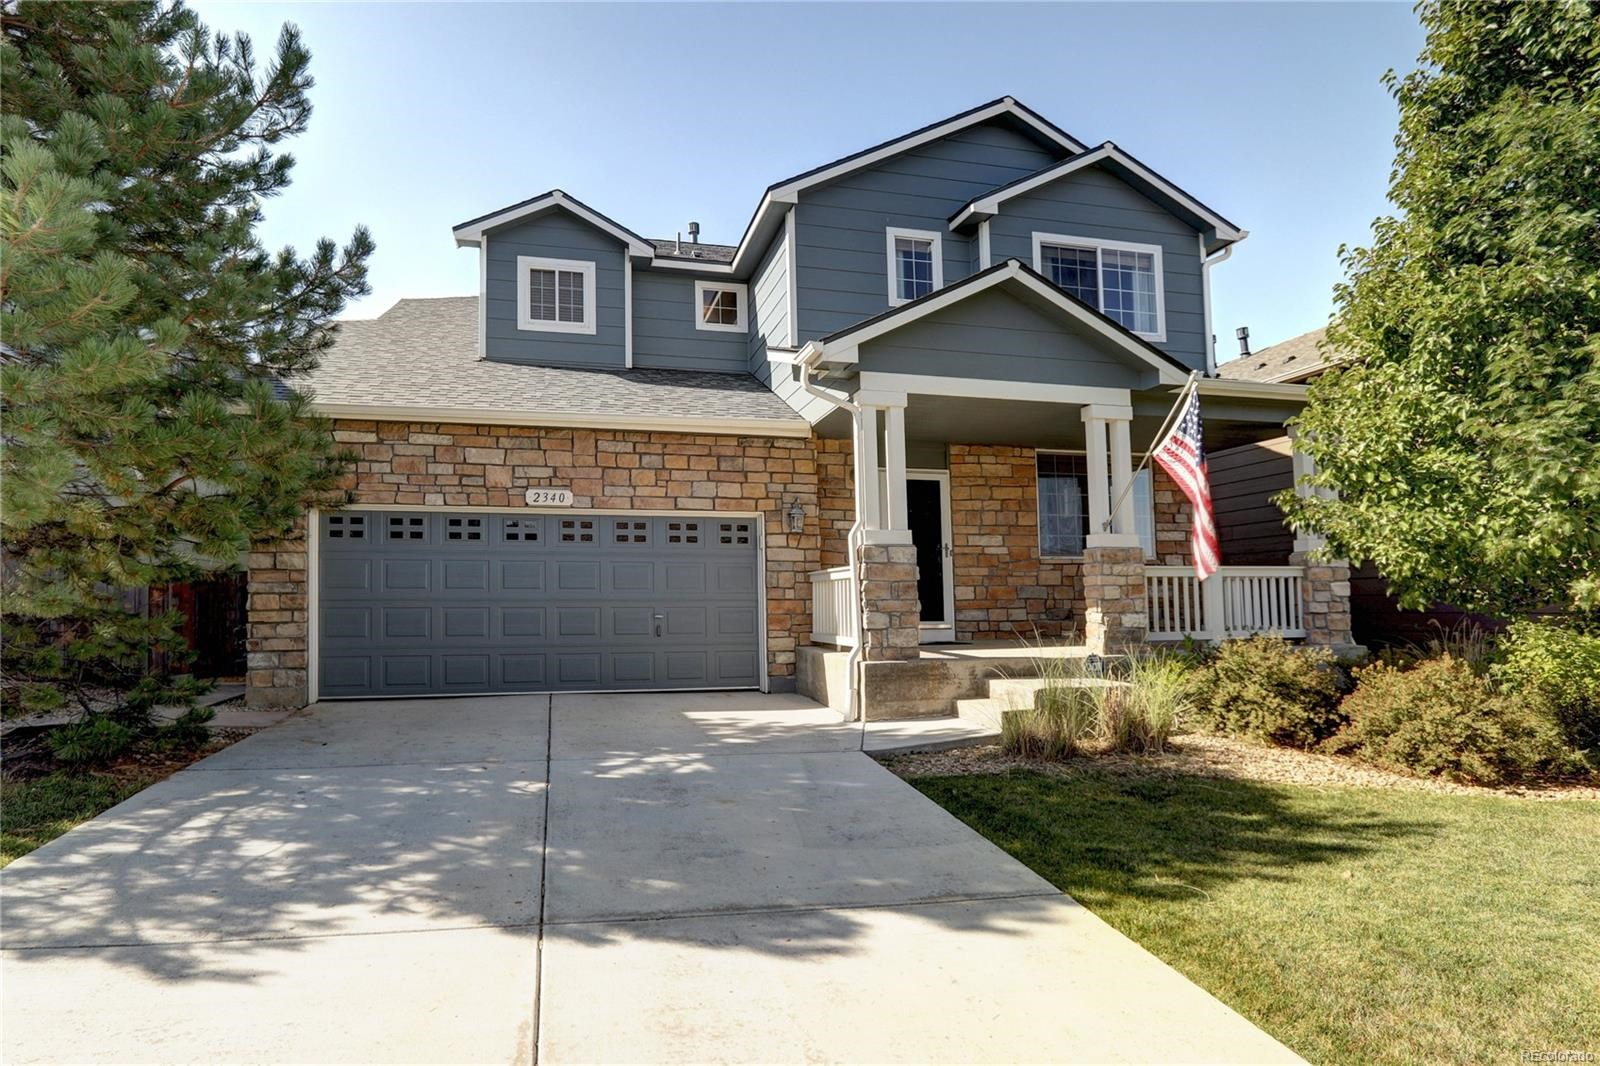 MLS# 4269653 - 1 - 2340 Holly Drive, Erie, CO 80516